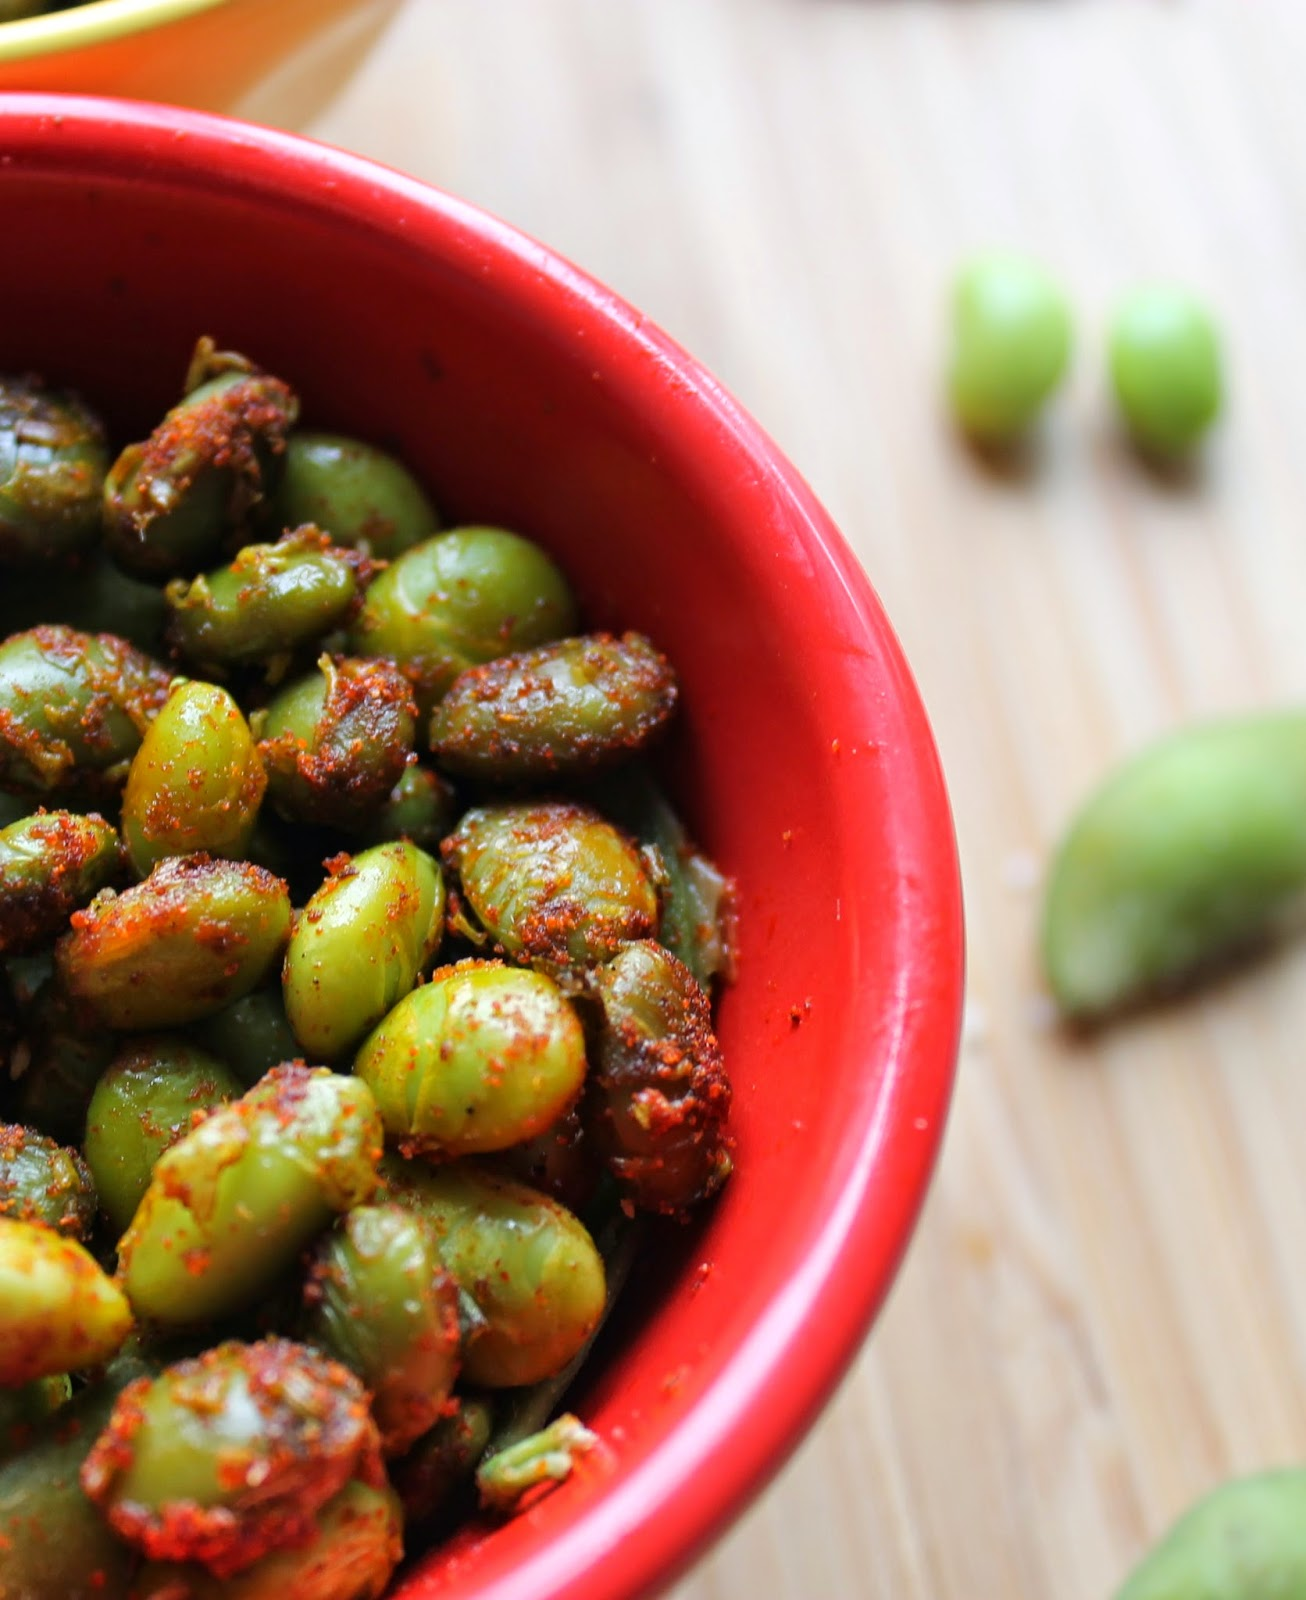 healthy snack: roasted edamame recipes to make at home